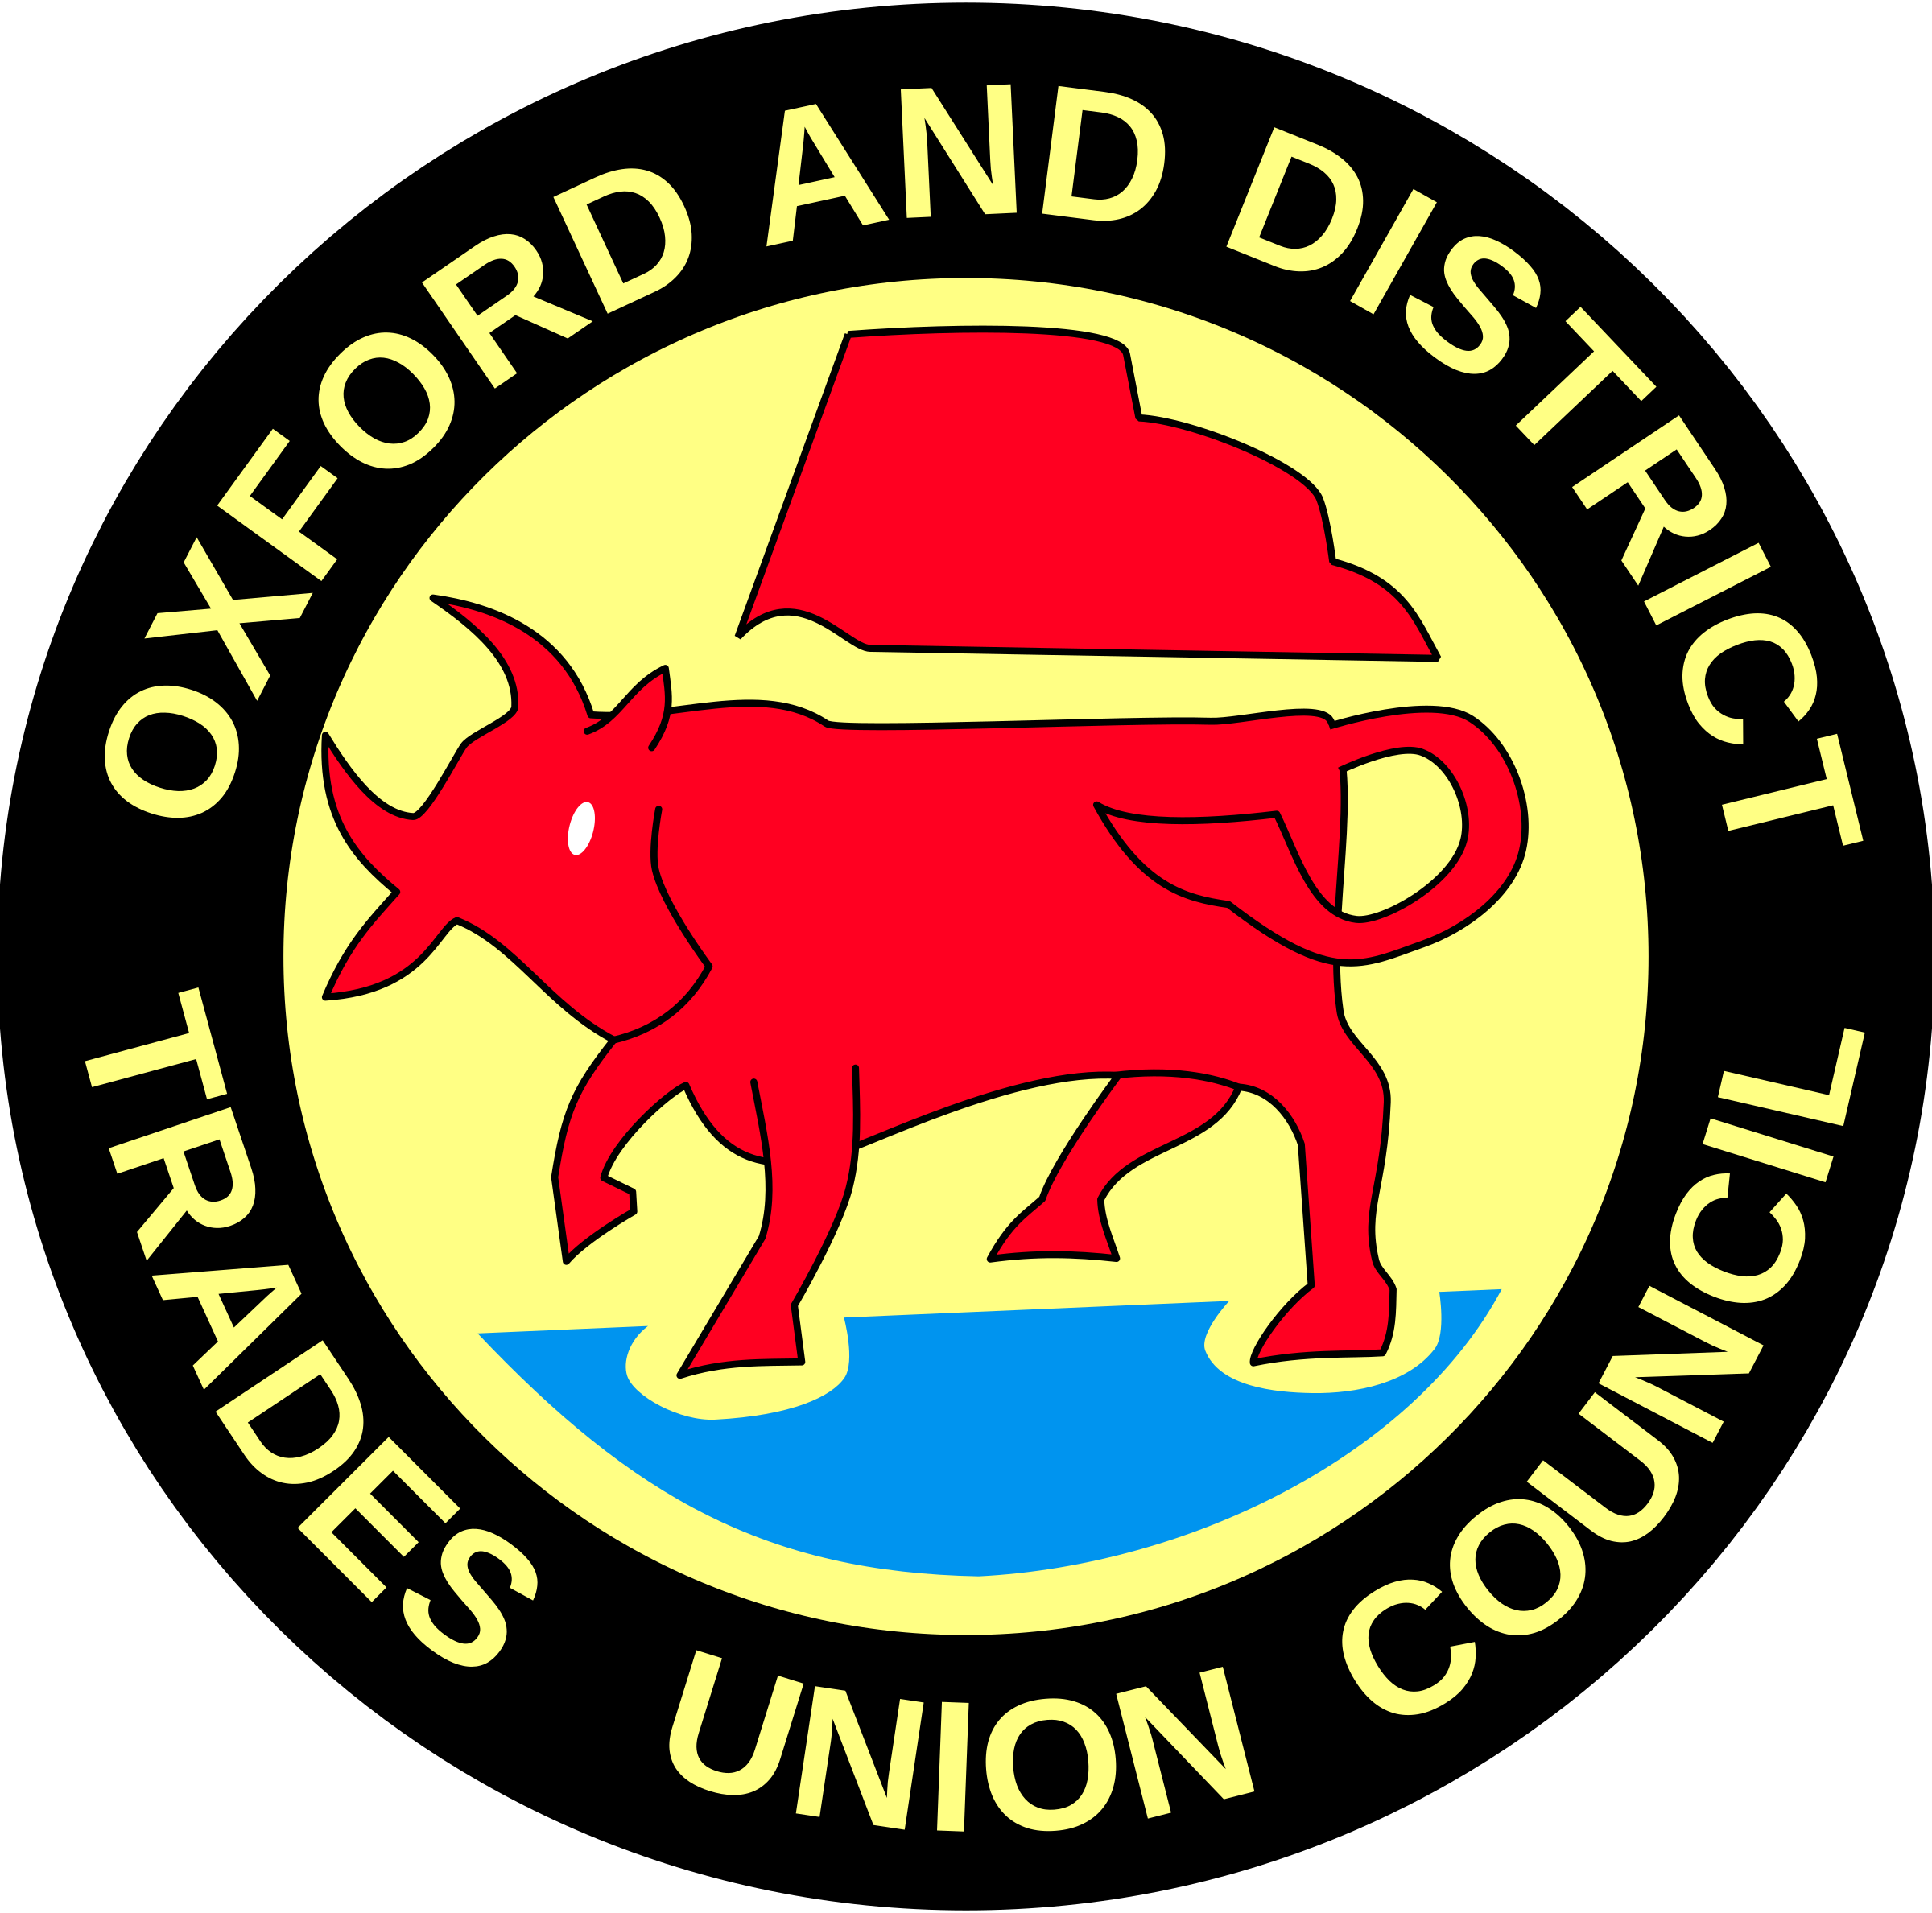 Oxford & District Trades Union Council by clagnar